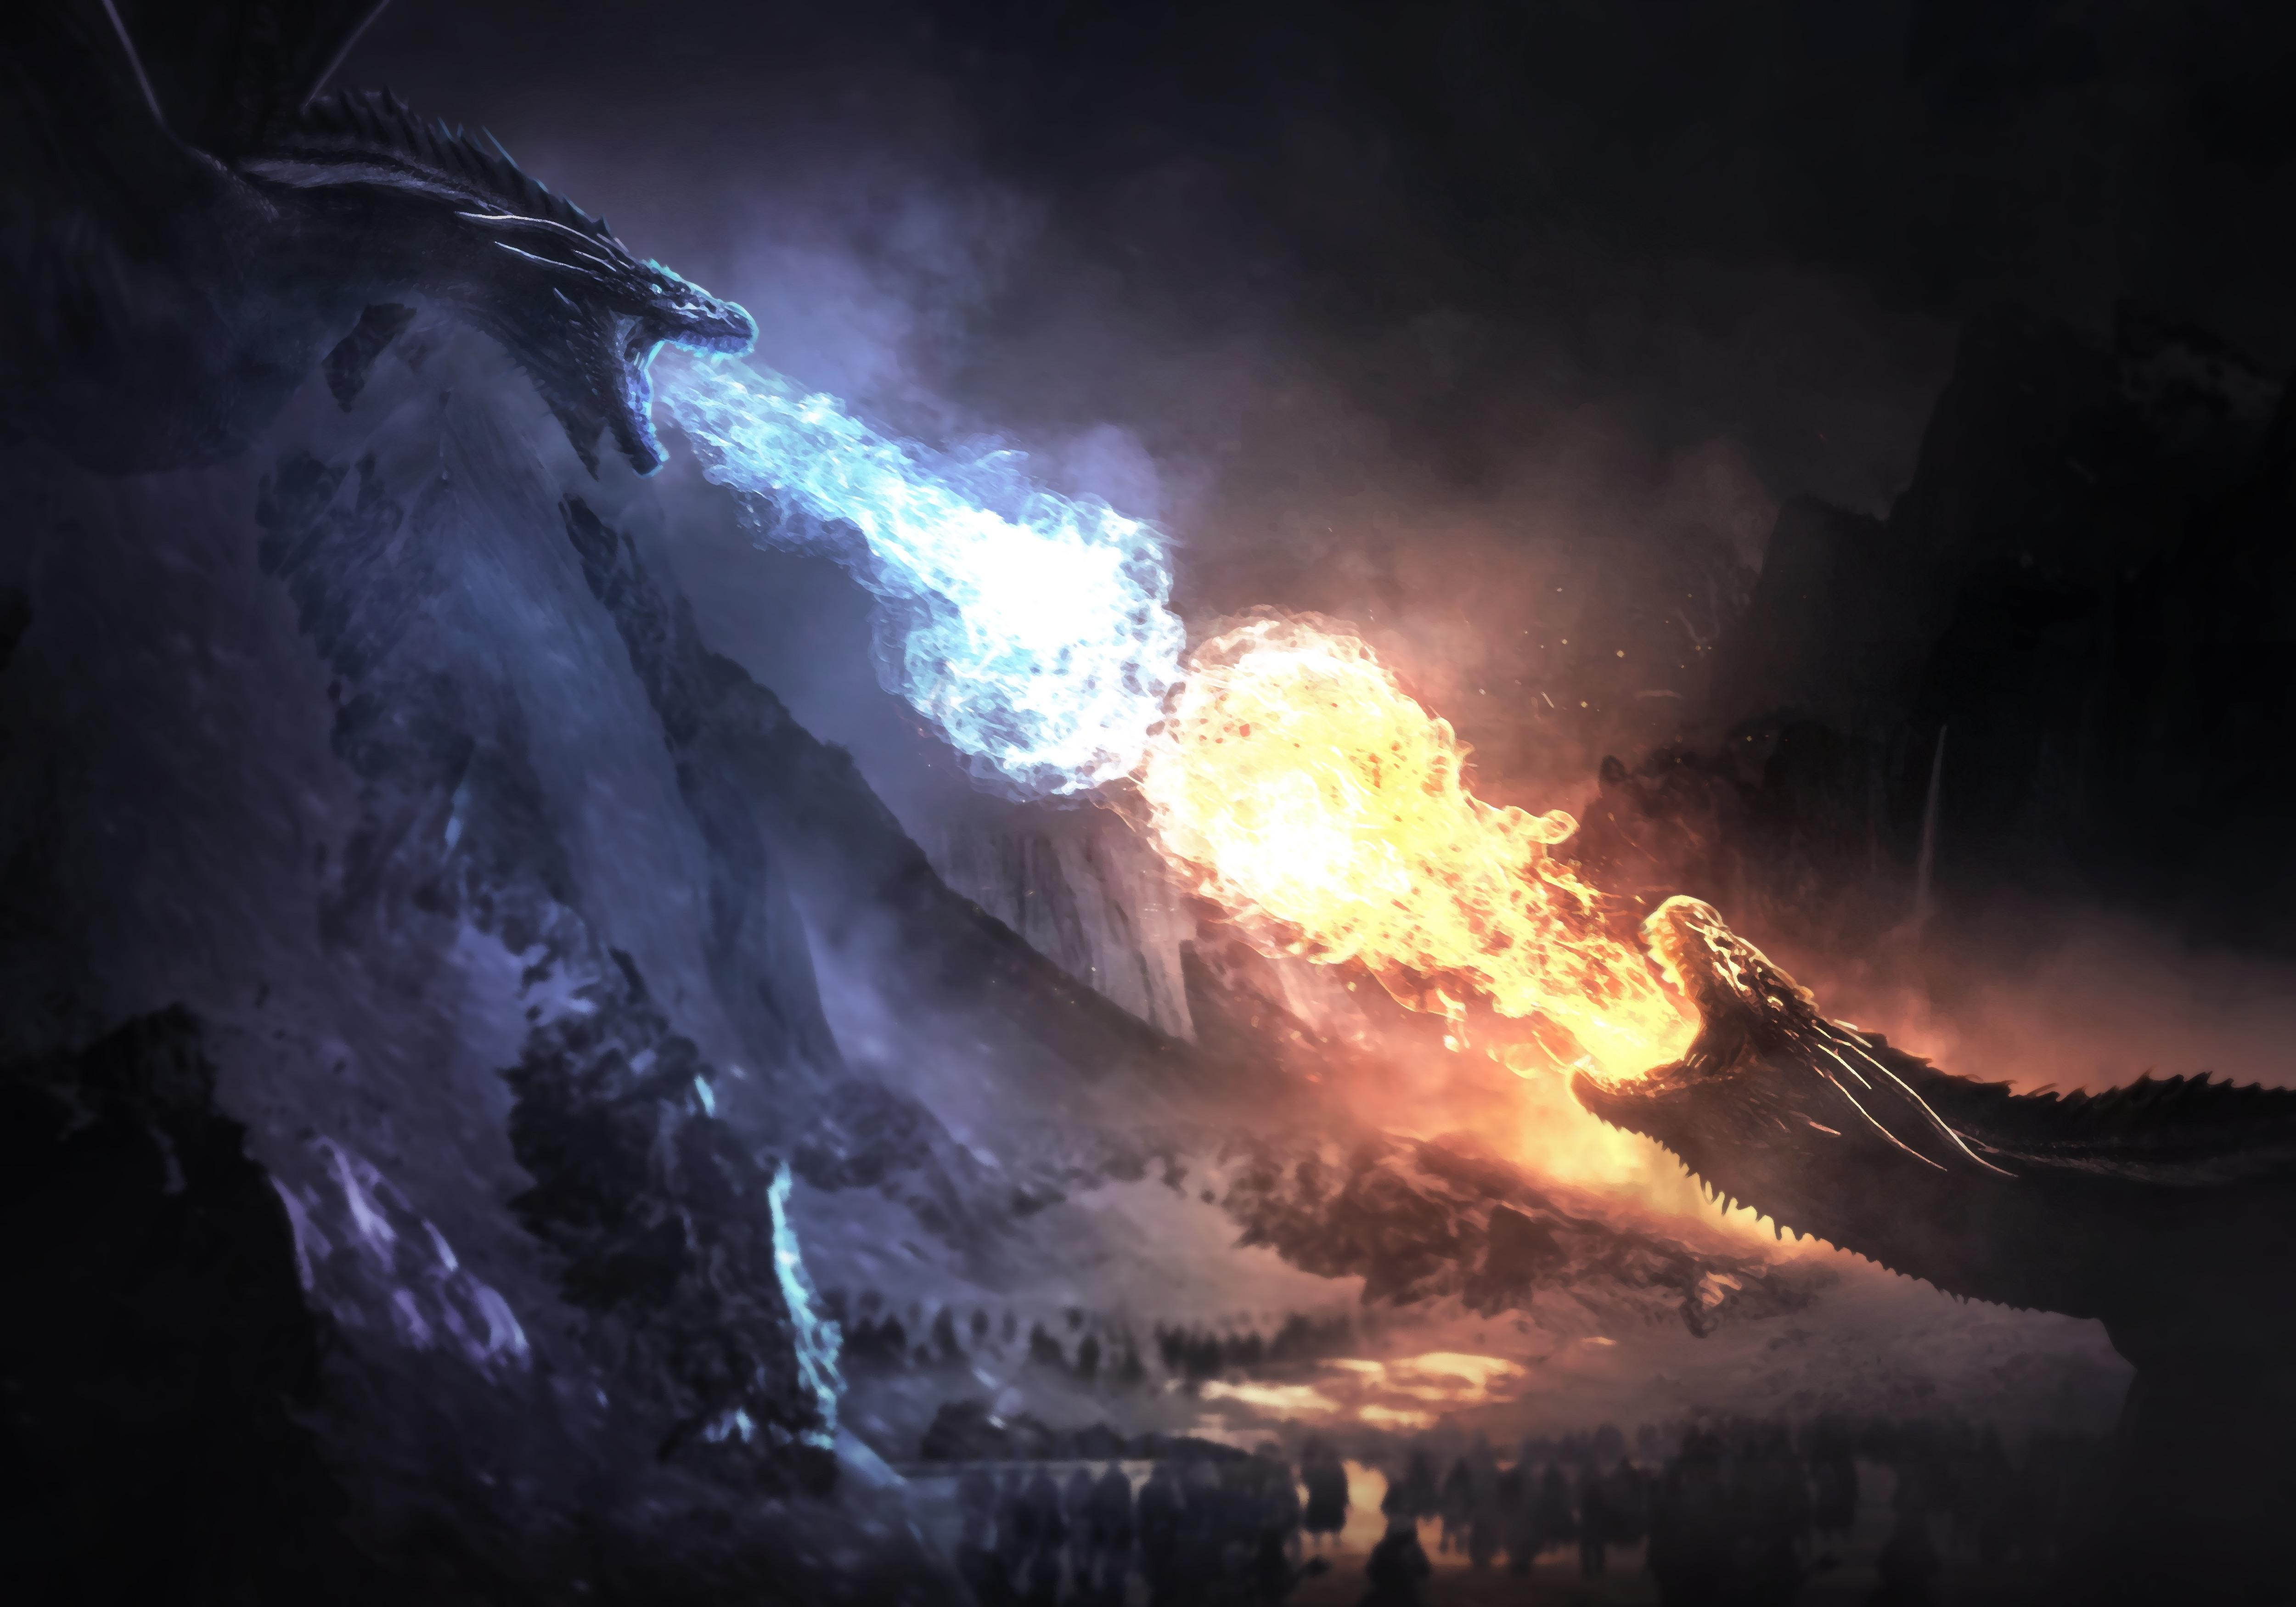 game of thrones season 8 dragons fight 1577912540 - Game Of Thrones Season 8 Dragons Fight - Got Dragons Fight 4k wallpaper, Dragons Fight game of thrones 4k wallpaper